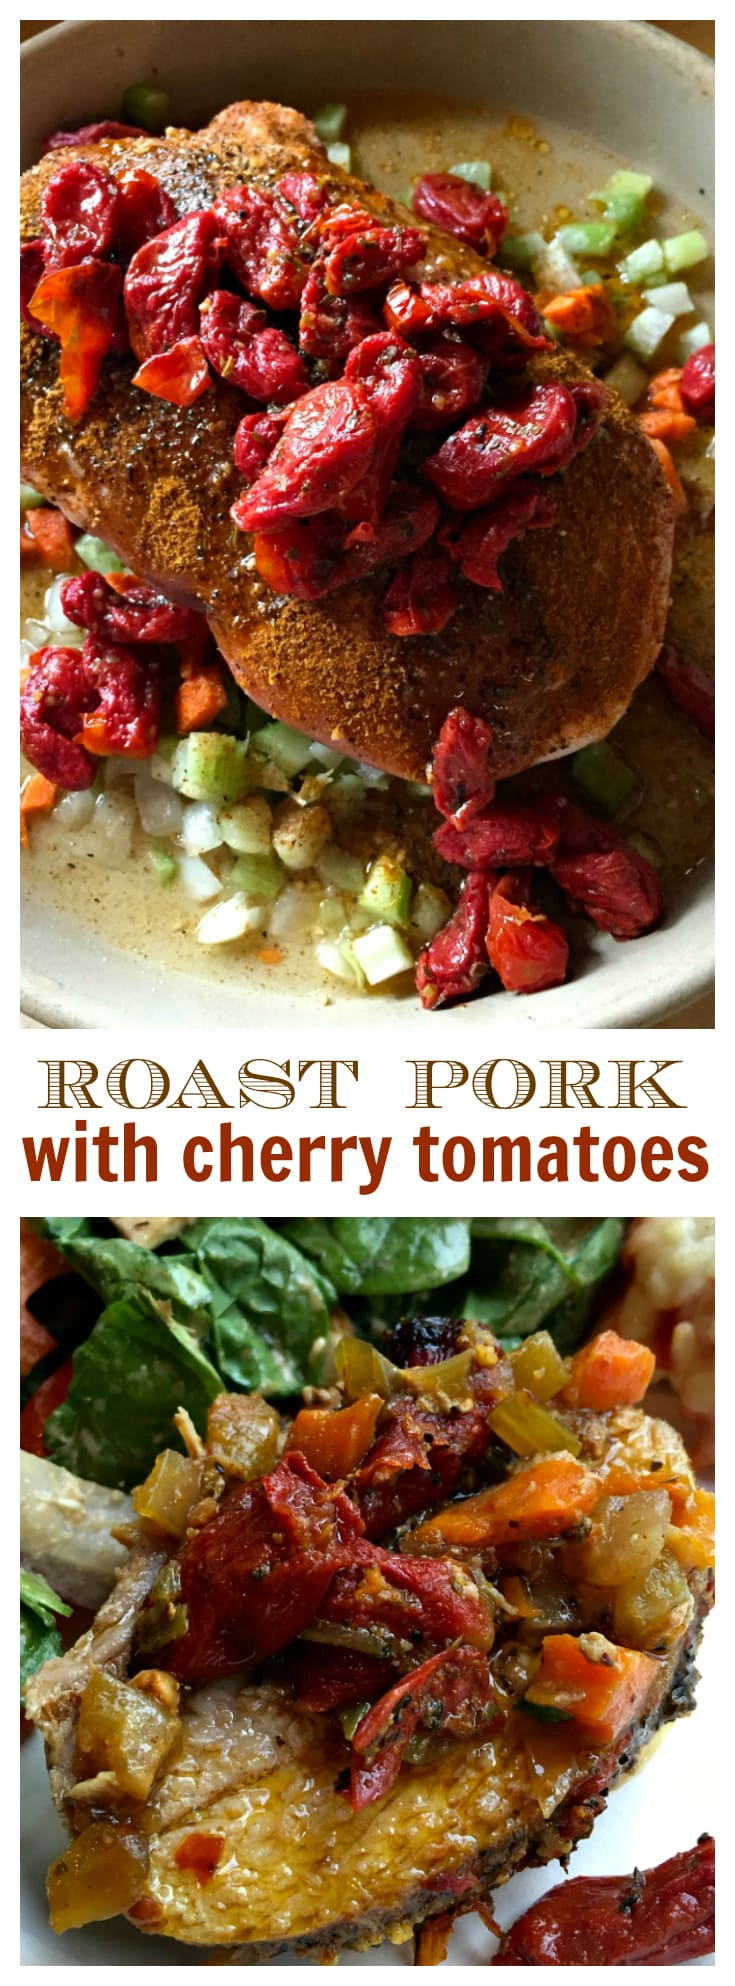 Pork Roast with Cherry Tomatoes